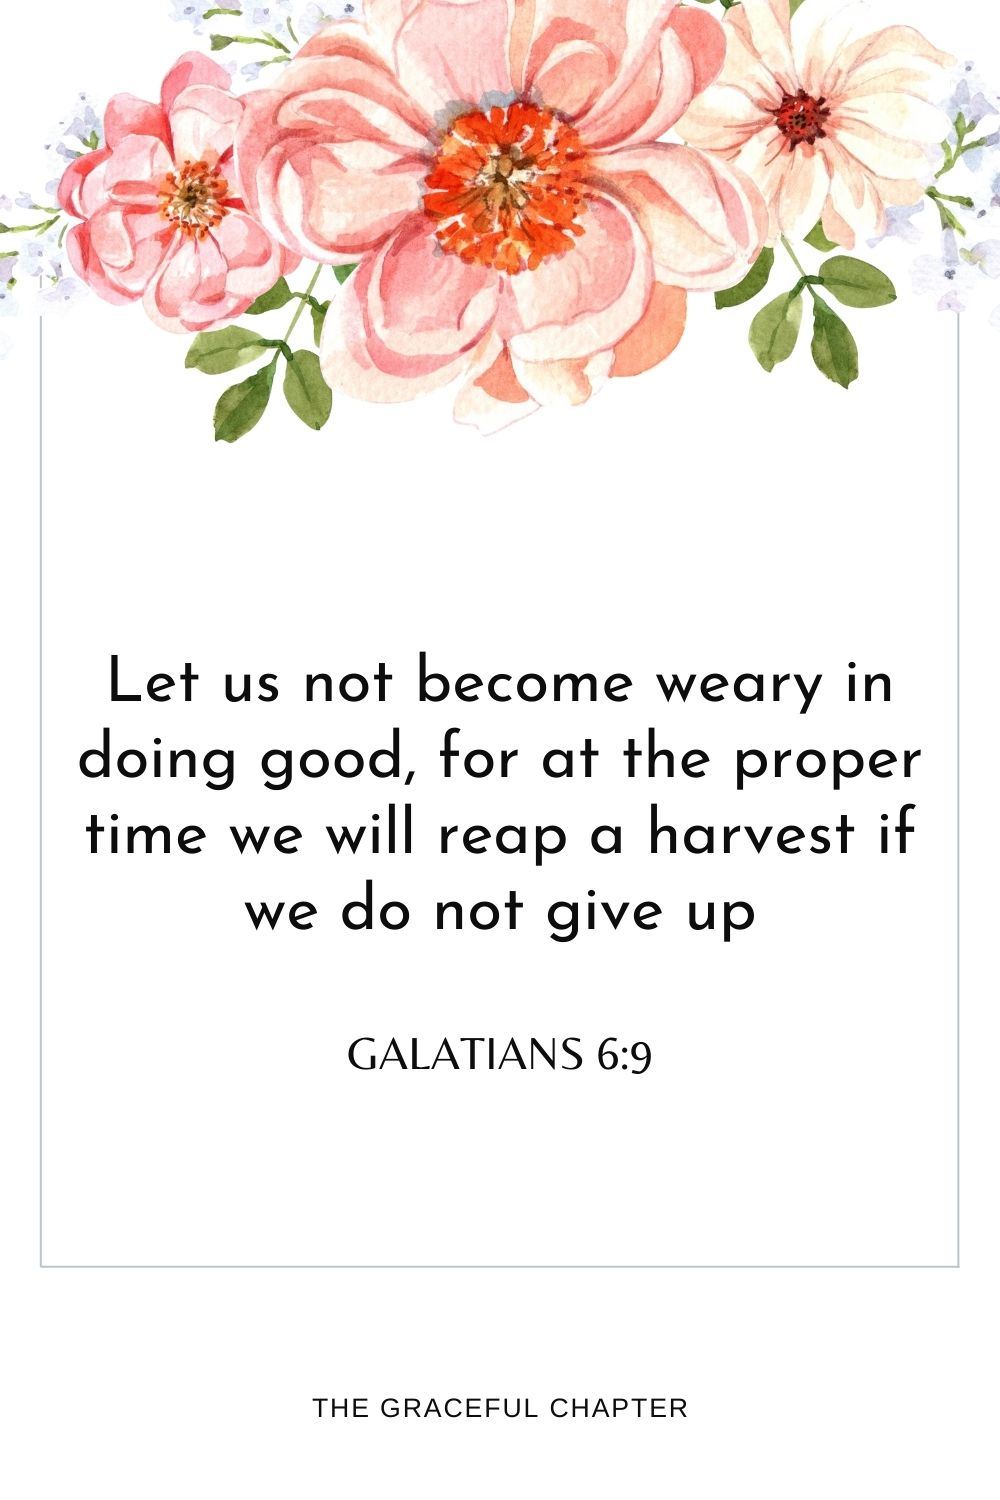 Let us not become weary in doing good,for at the proper time we will reap a harvest if we do not give up. Galatians 6:9